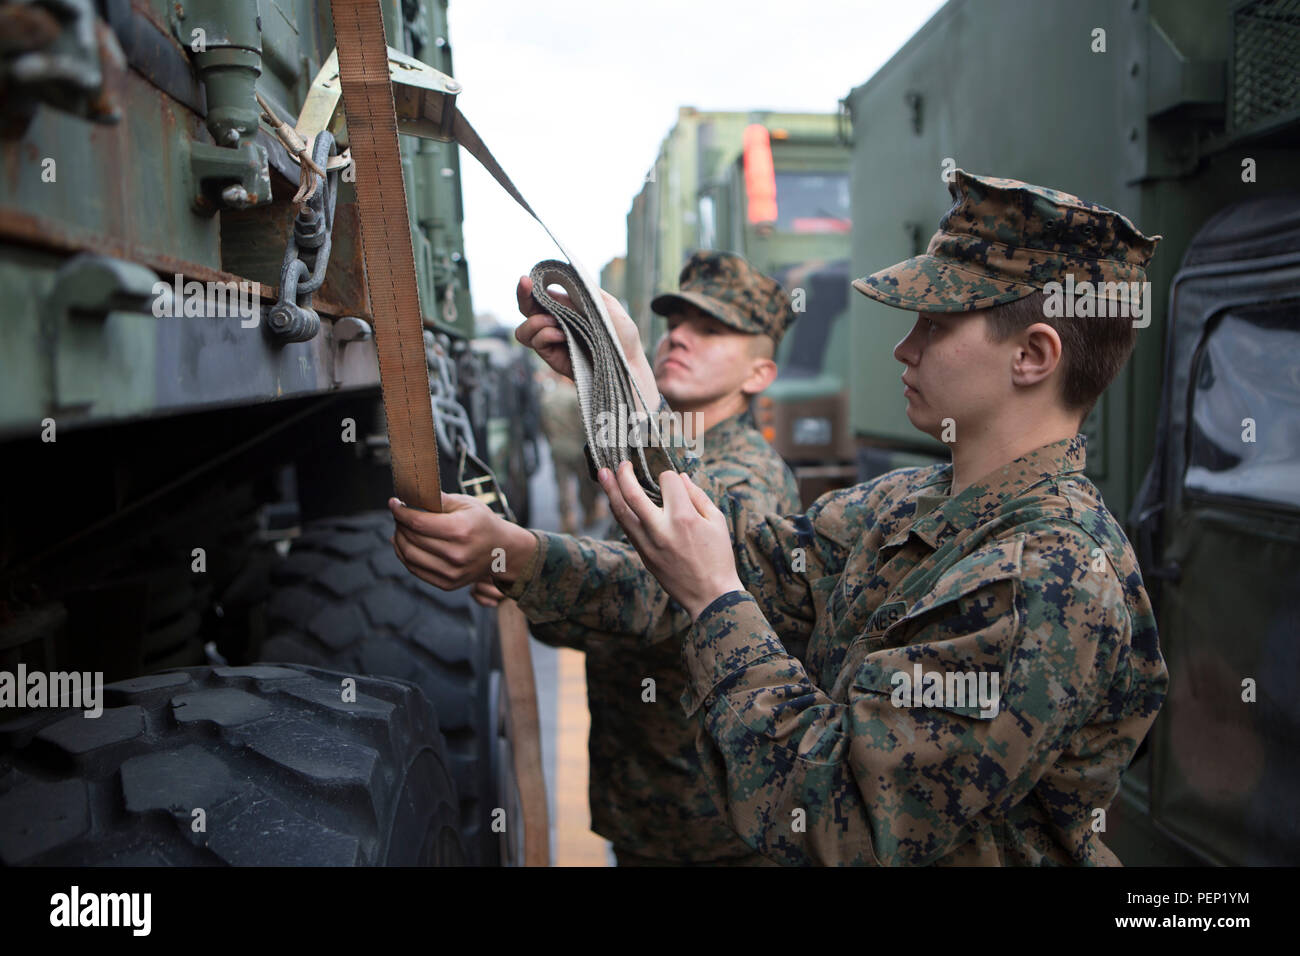 Lance Cpl. Elizabeth Hall, a motor transportation operator with Combat Logistics Battalion 31, 31st Marine Expeditionary Unit, works to secure cargo to a 7-ton truck in preparation for a convoy to embark equipment on the Navy ships of the USS Bonhomme Richard (LHD 6) Amphibious Ready Group, Jan. 26, 2016, on Camp Hansen, Okinawa, Japan. The Marines and sailors of the 31st MEU are gearing up for their spring deployment to the Asia-Pacific region. Hall is a native of Portsmouth, Ohio. (U.S. Marine Corps photo by Lance Cpl. Carl King Jr./Released) - Stock Image